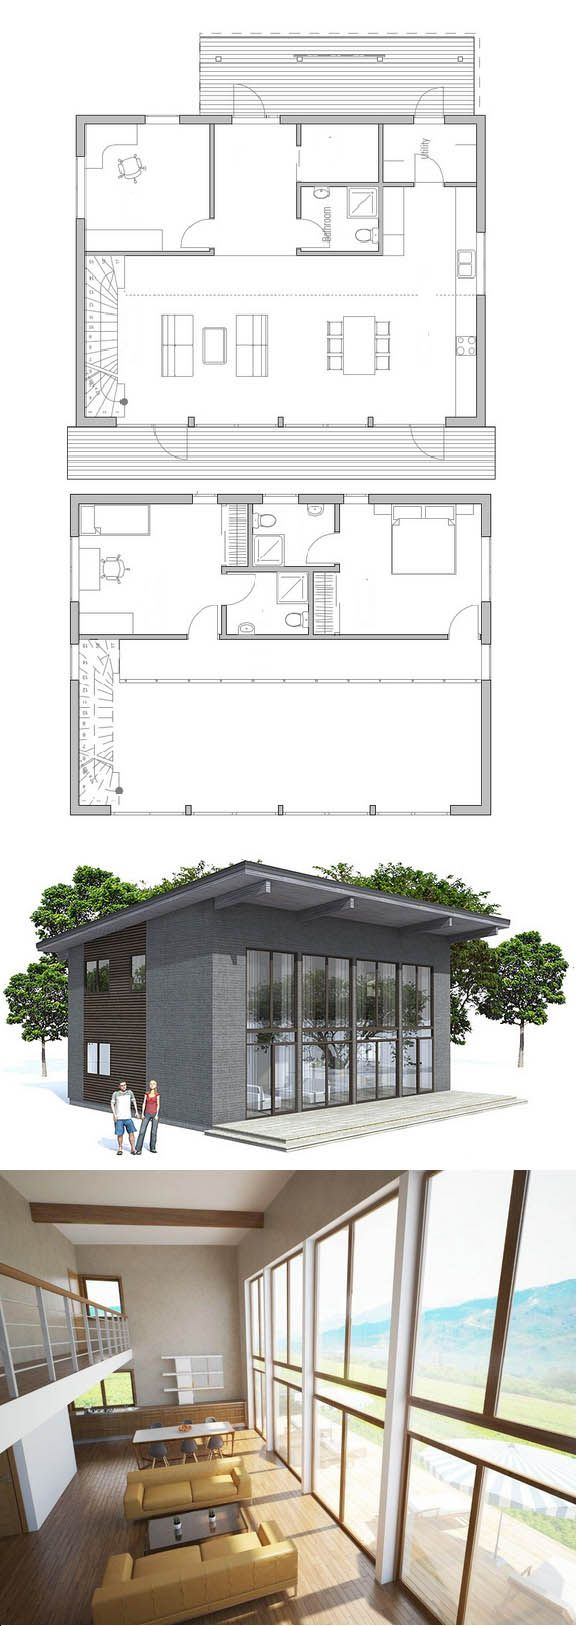 Find this pin and more on casas econômicas modern house